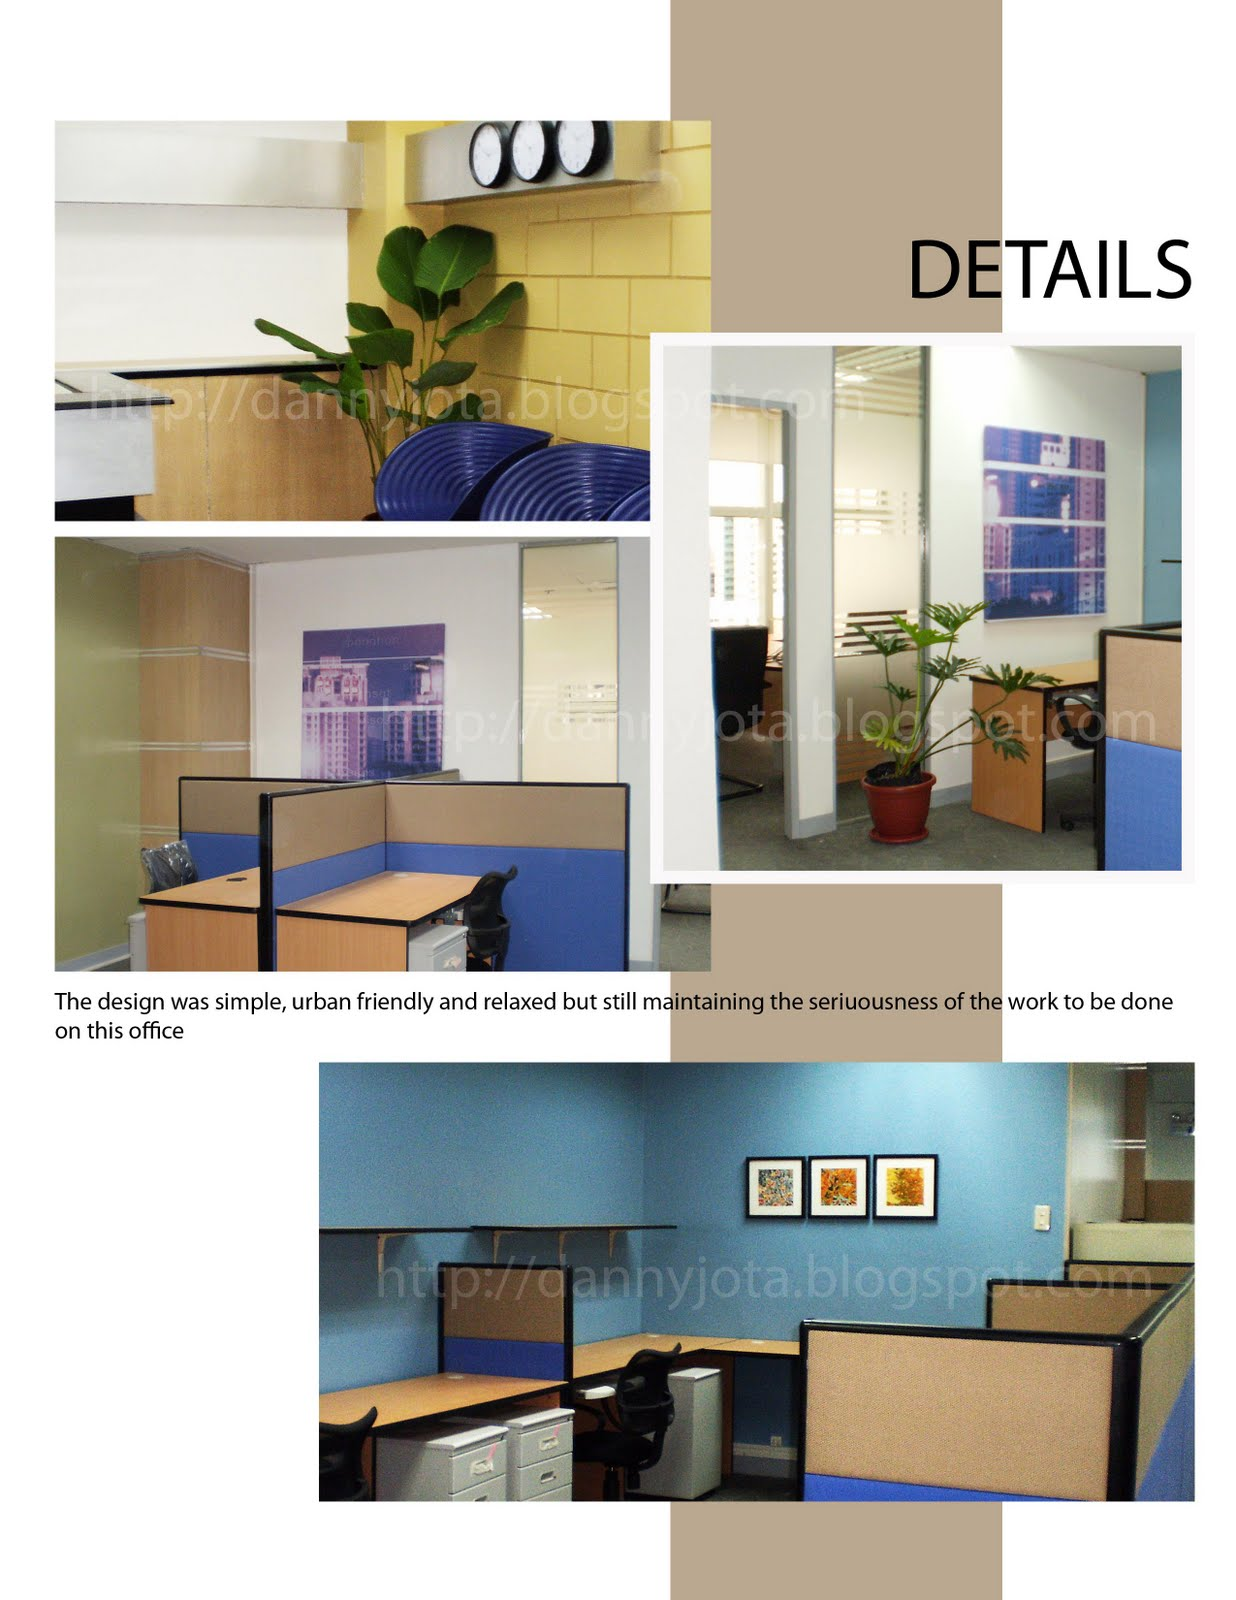 Office interior design for a software company danny jota for Office interior design software